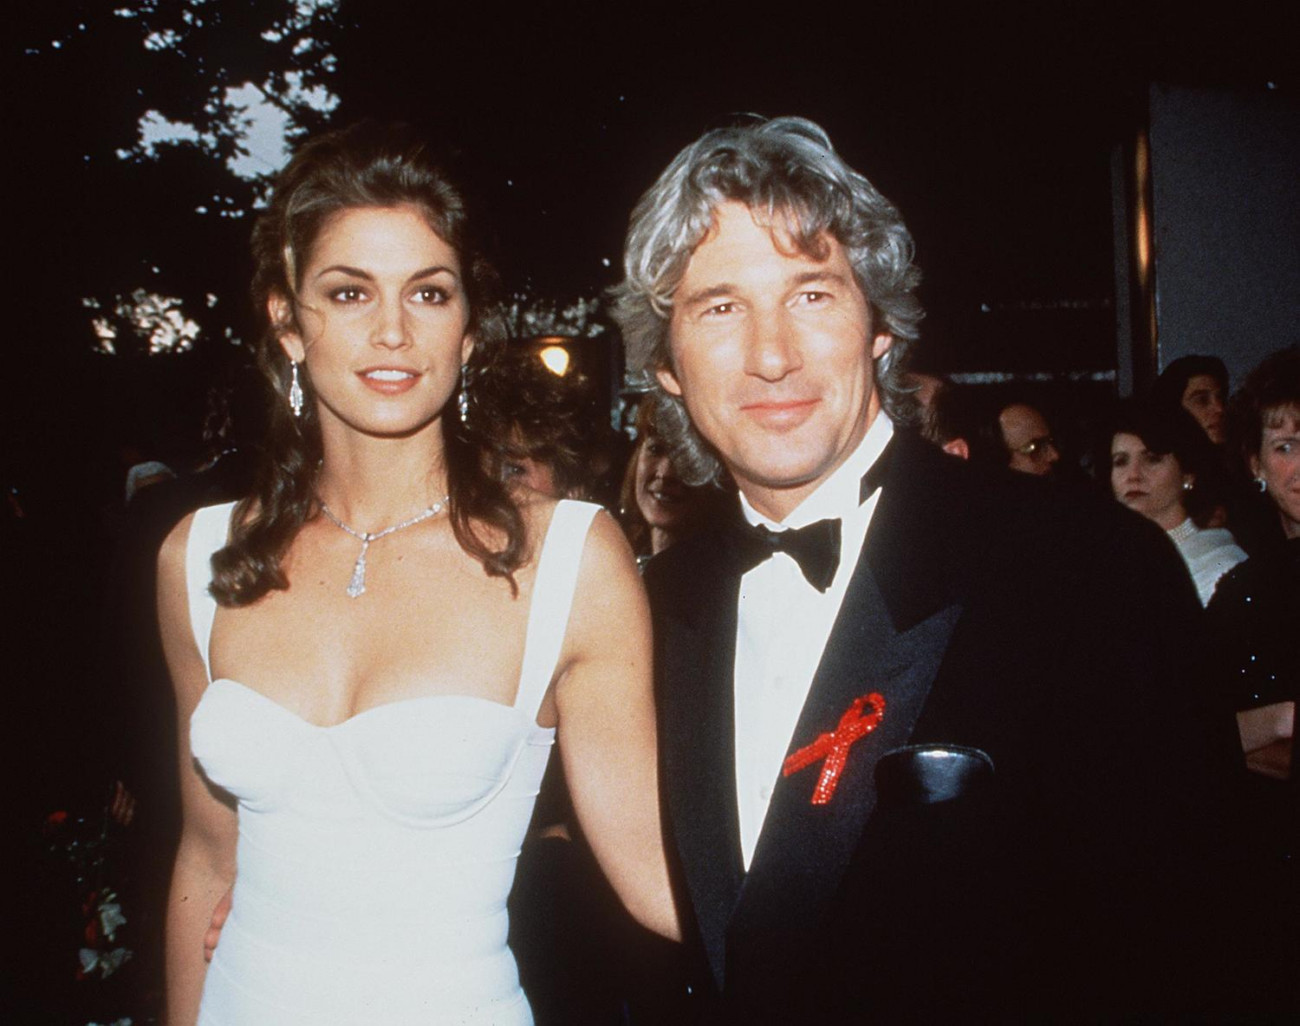 1993 Cindy Crawford and Richard Gere. Stock photo. Photo by Brenda Chase/Online USA, Inc.